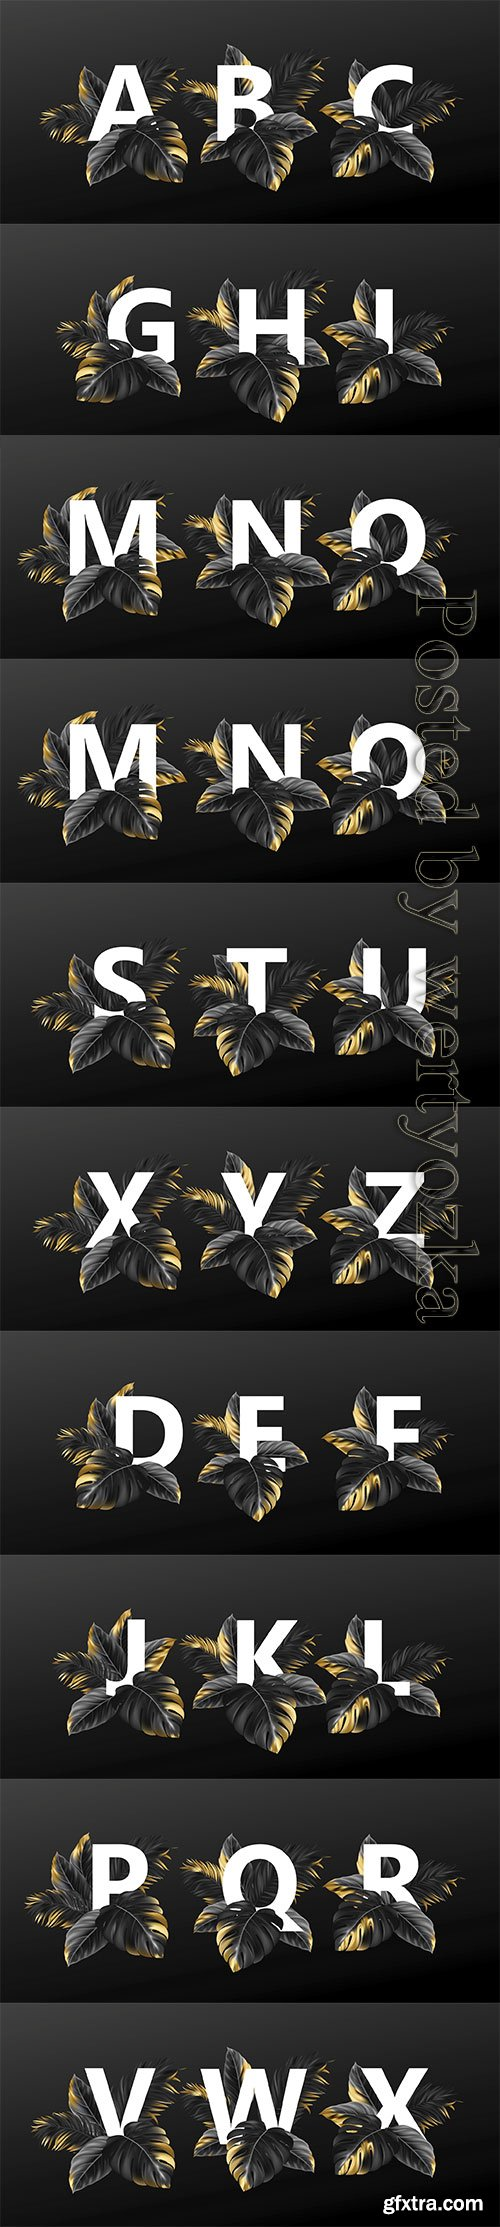 Alphabet letters in black with golden exotic tropical leaves of plants